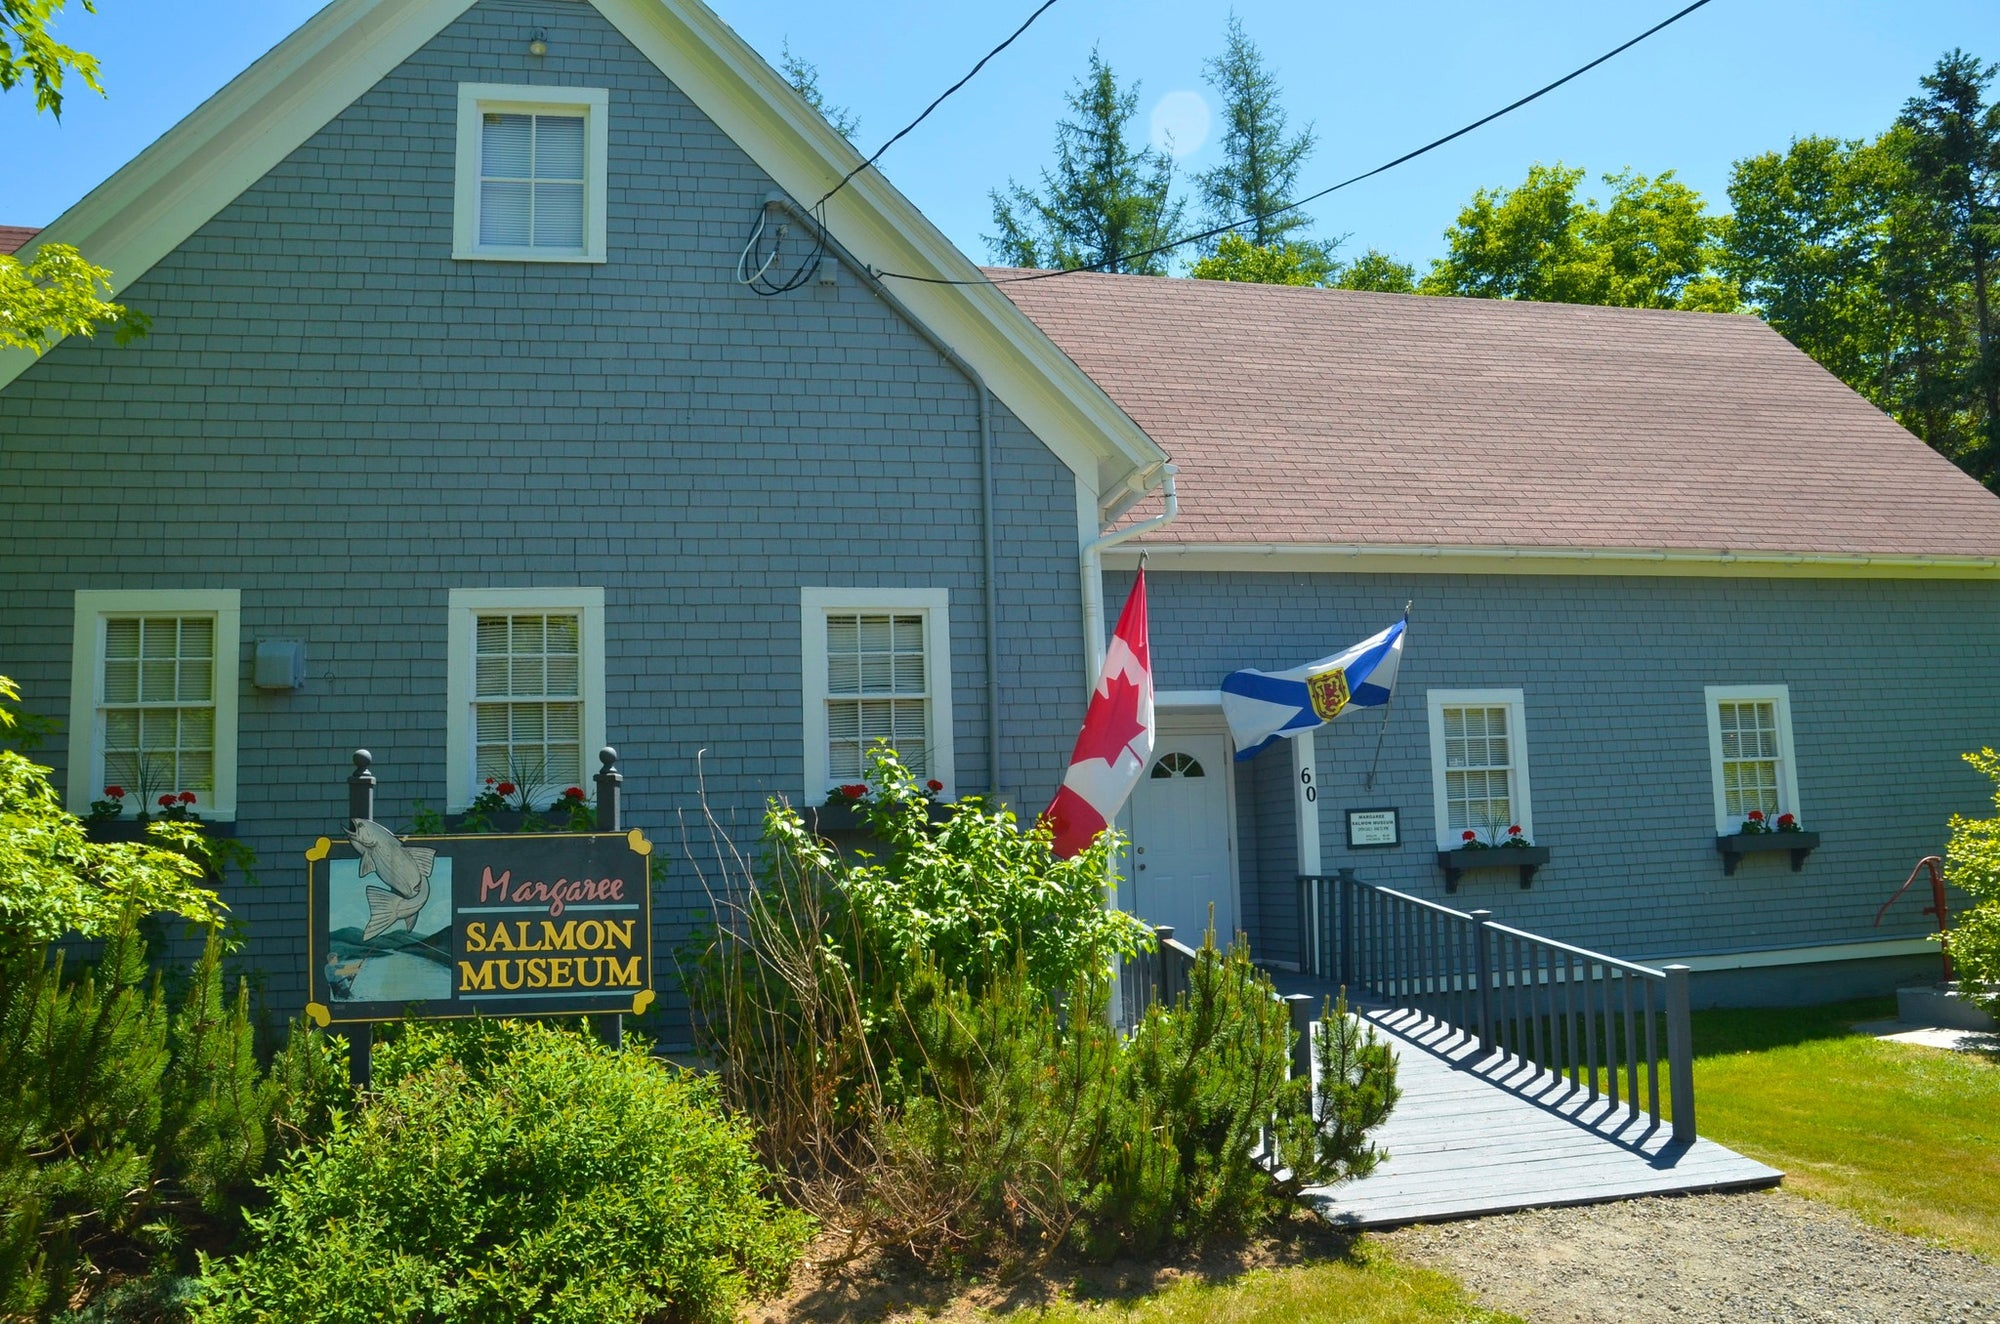 The Margaree Salmon Museum